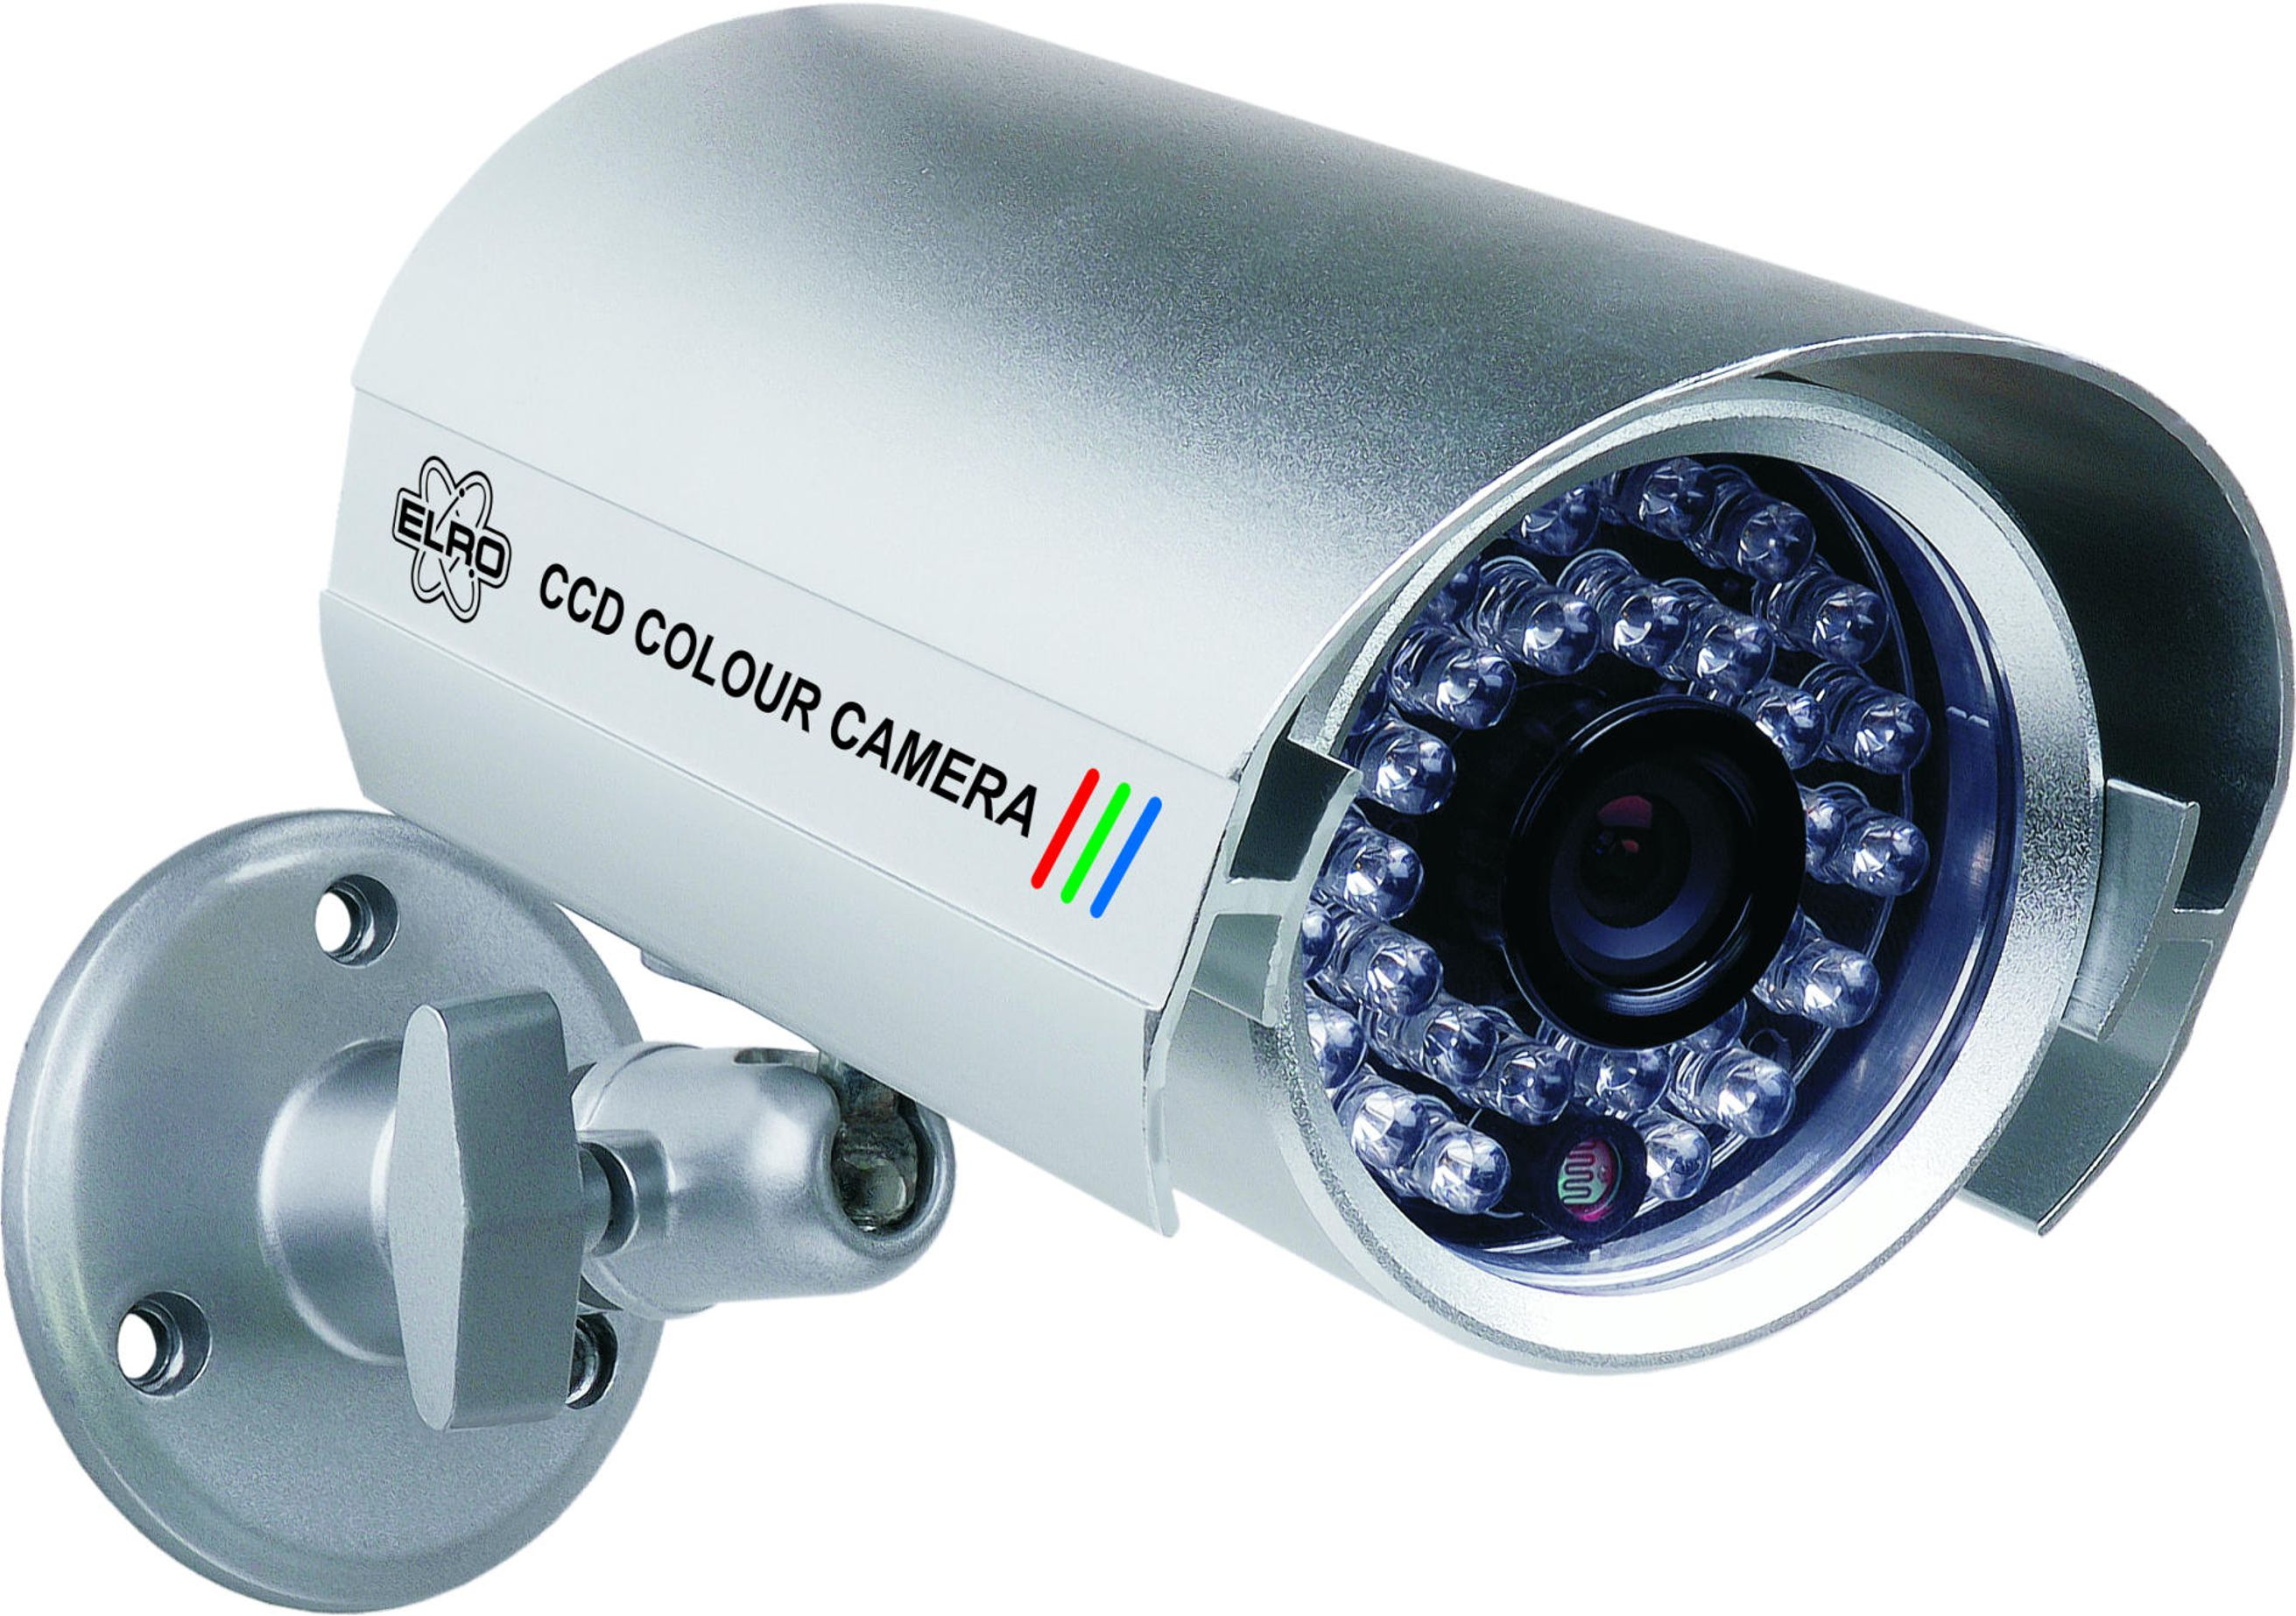 medium resolution of elro wired ccd colour security camera with 30 infrared leds